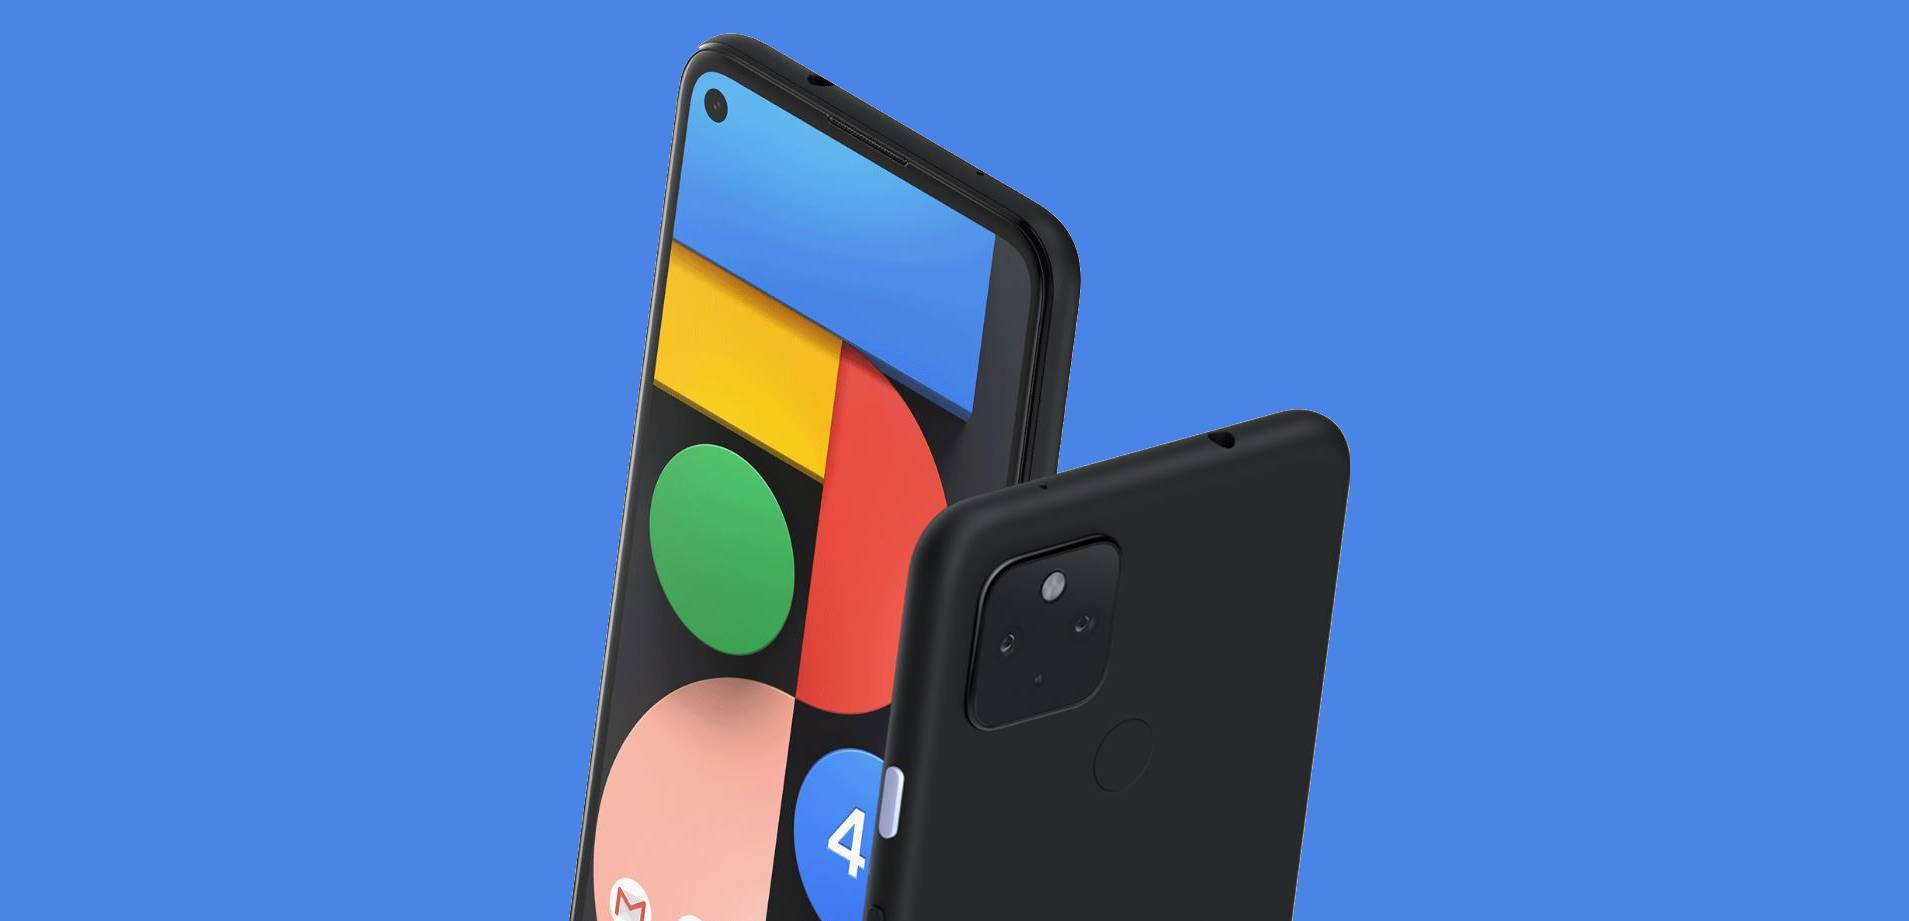 2 current offers for the Google Pixel 4a (5G)